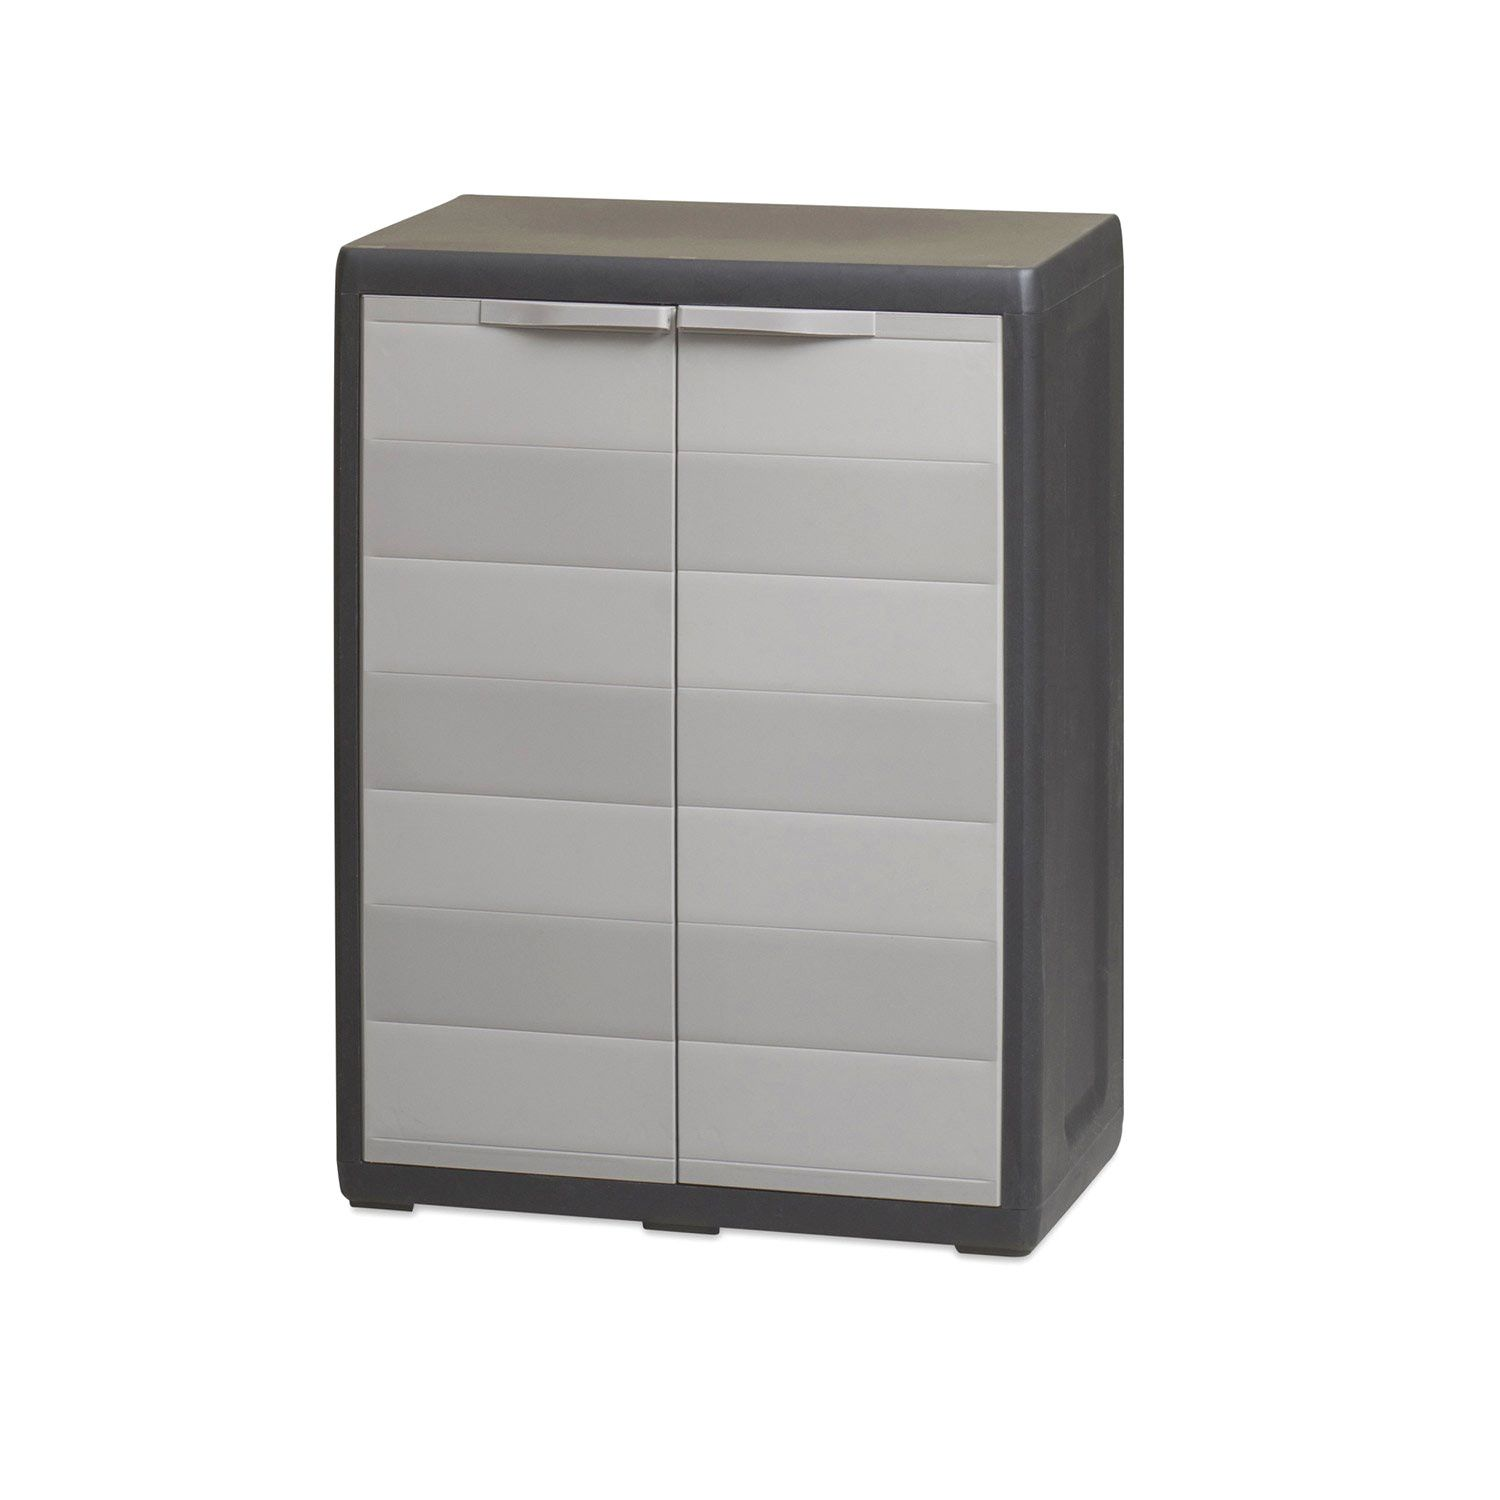 15 Immaculee Frais Armoire Basse Penderie Minimalis